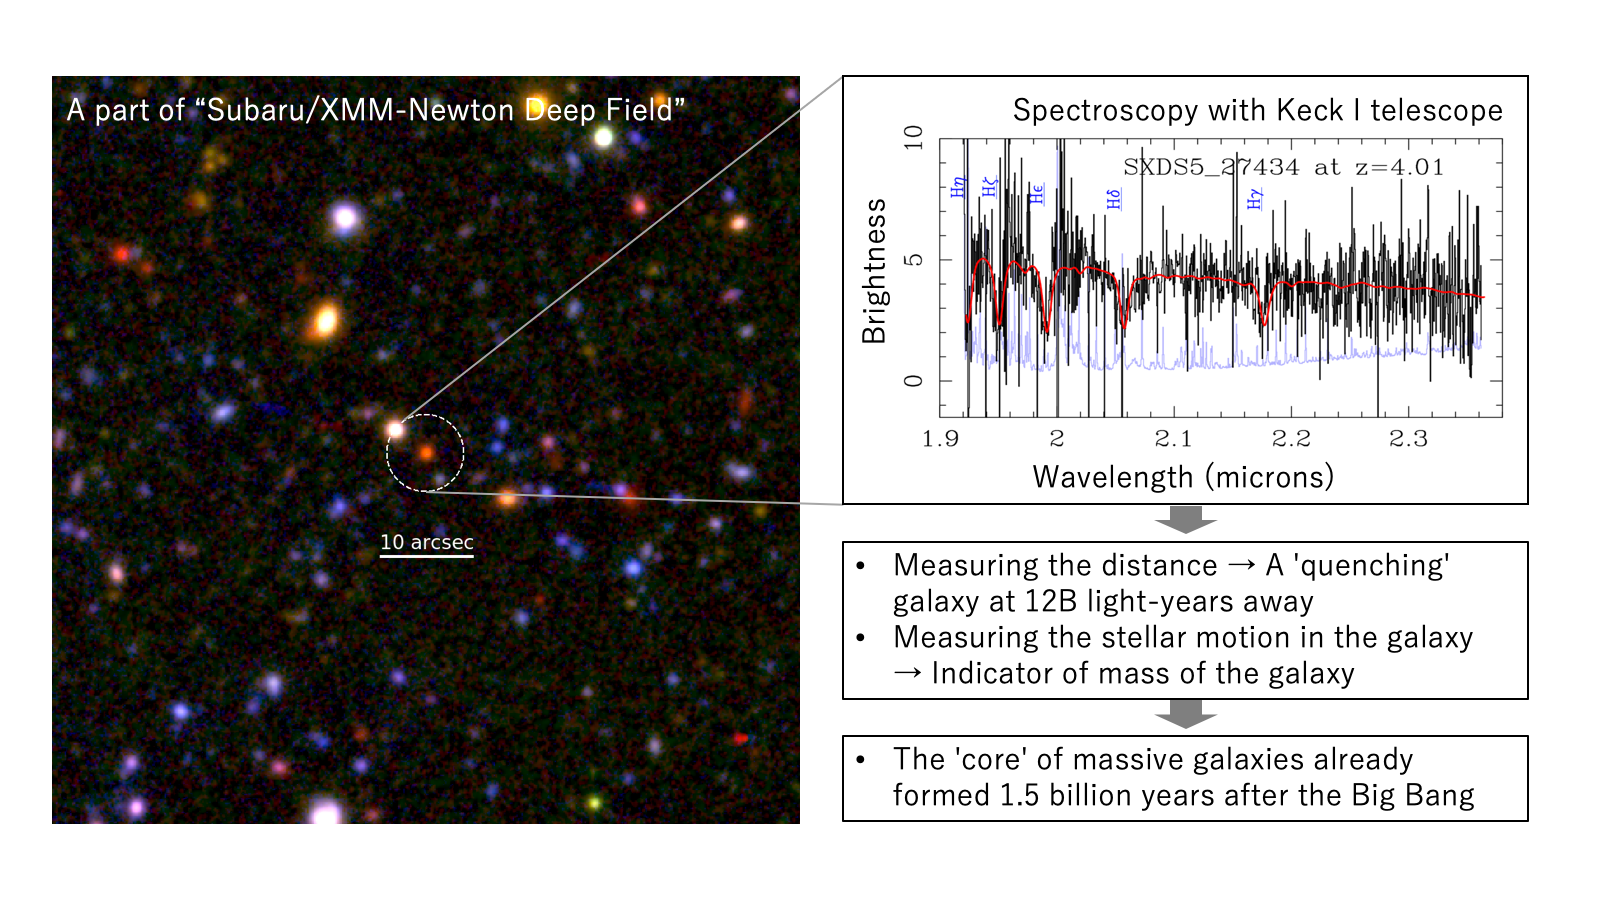 The 'Cores' of Massive Galaxies Had Already Formed 1.5 Billion Years after the Big Bang Figure2